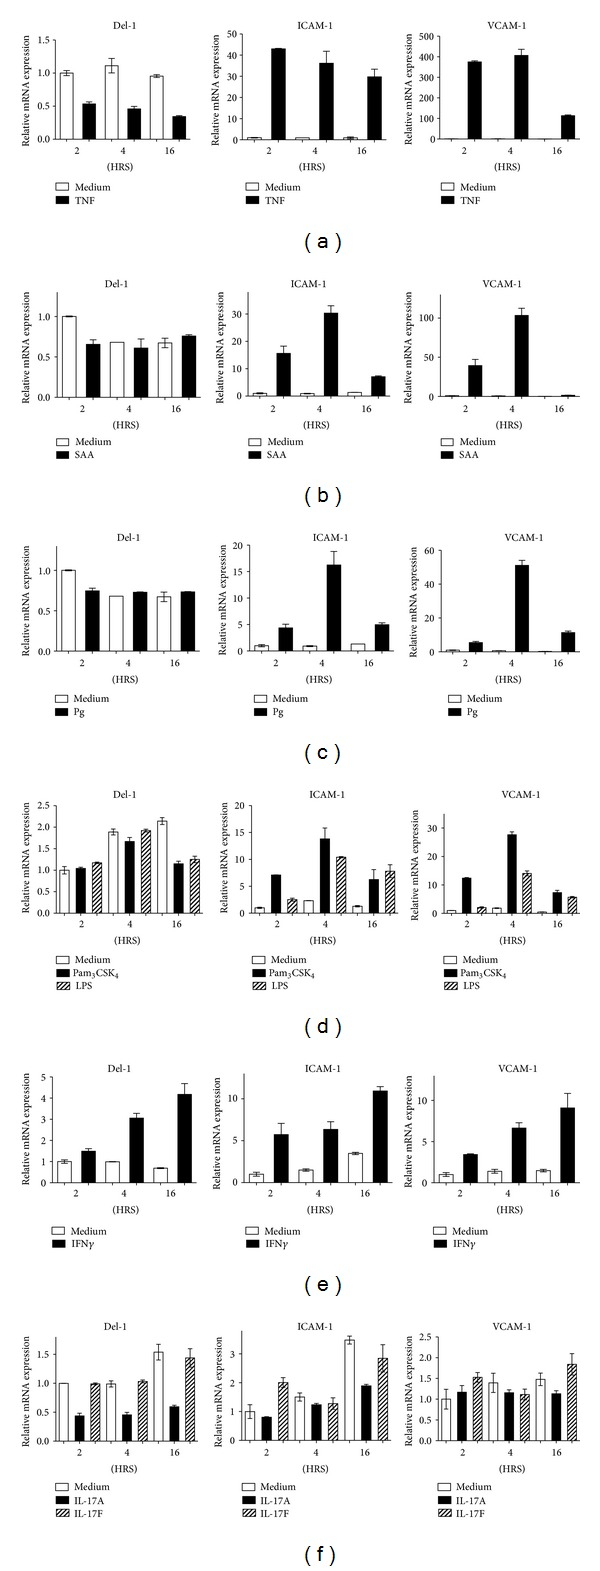 Regulation of Del-1 versus ICAM-1 and VCAM-1 by inflammatory stimuli. HUVEC were cultured for the indicated time intervals with 10 ng/mL TNF (a), 5 μ g/mL serum amyloid A (SAA; (b)), P. gingivalis (Pg; MOI = 10 : 1) (c), Pam 3 CSK 4 or LPS (both at 0.5 μ g/mL; (d)), 10 ng/mL IFN γ (e), or IL-17A or IL-17F (both at 10 ng/mL; (f)) and assayed for Del-1, ICAM-1, and VCAM-1 mRNA expression. Results were normalized to those of GAPDH mRNA and expressed as fold change in transcript levels relative to those of medium-treated cells at 2 hours (HRS), the average value of which was taken as 1. The medium-treated groups in (b) and (c) are the same (SAA and Pg were tested together but were separated in the graphs for enhanced clarity). Data are means ± SD of duplicate determinations from one of three independent sets of experiments that yielded similar results.